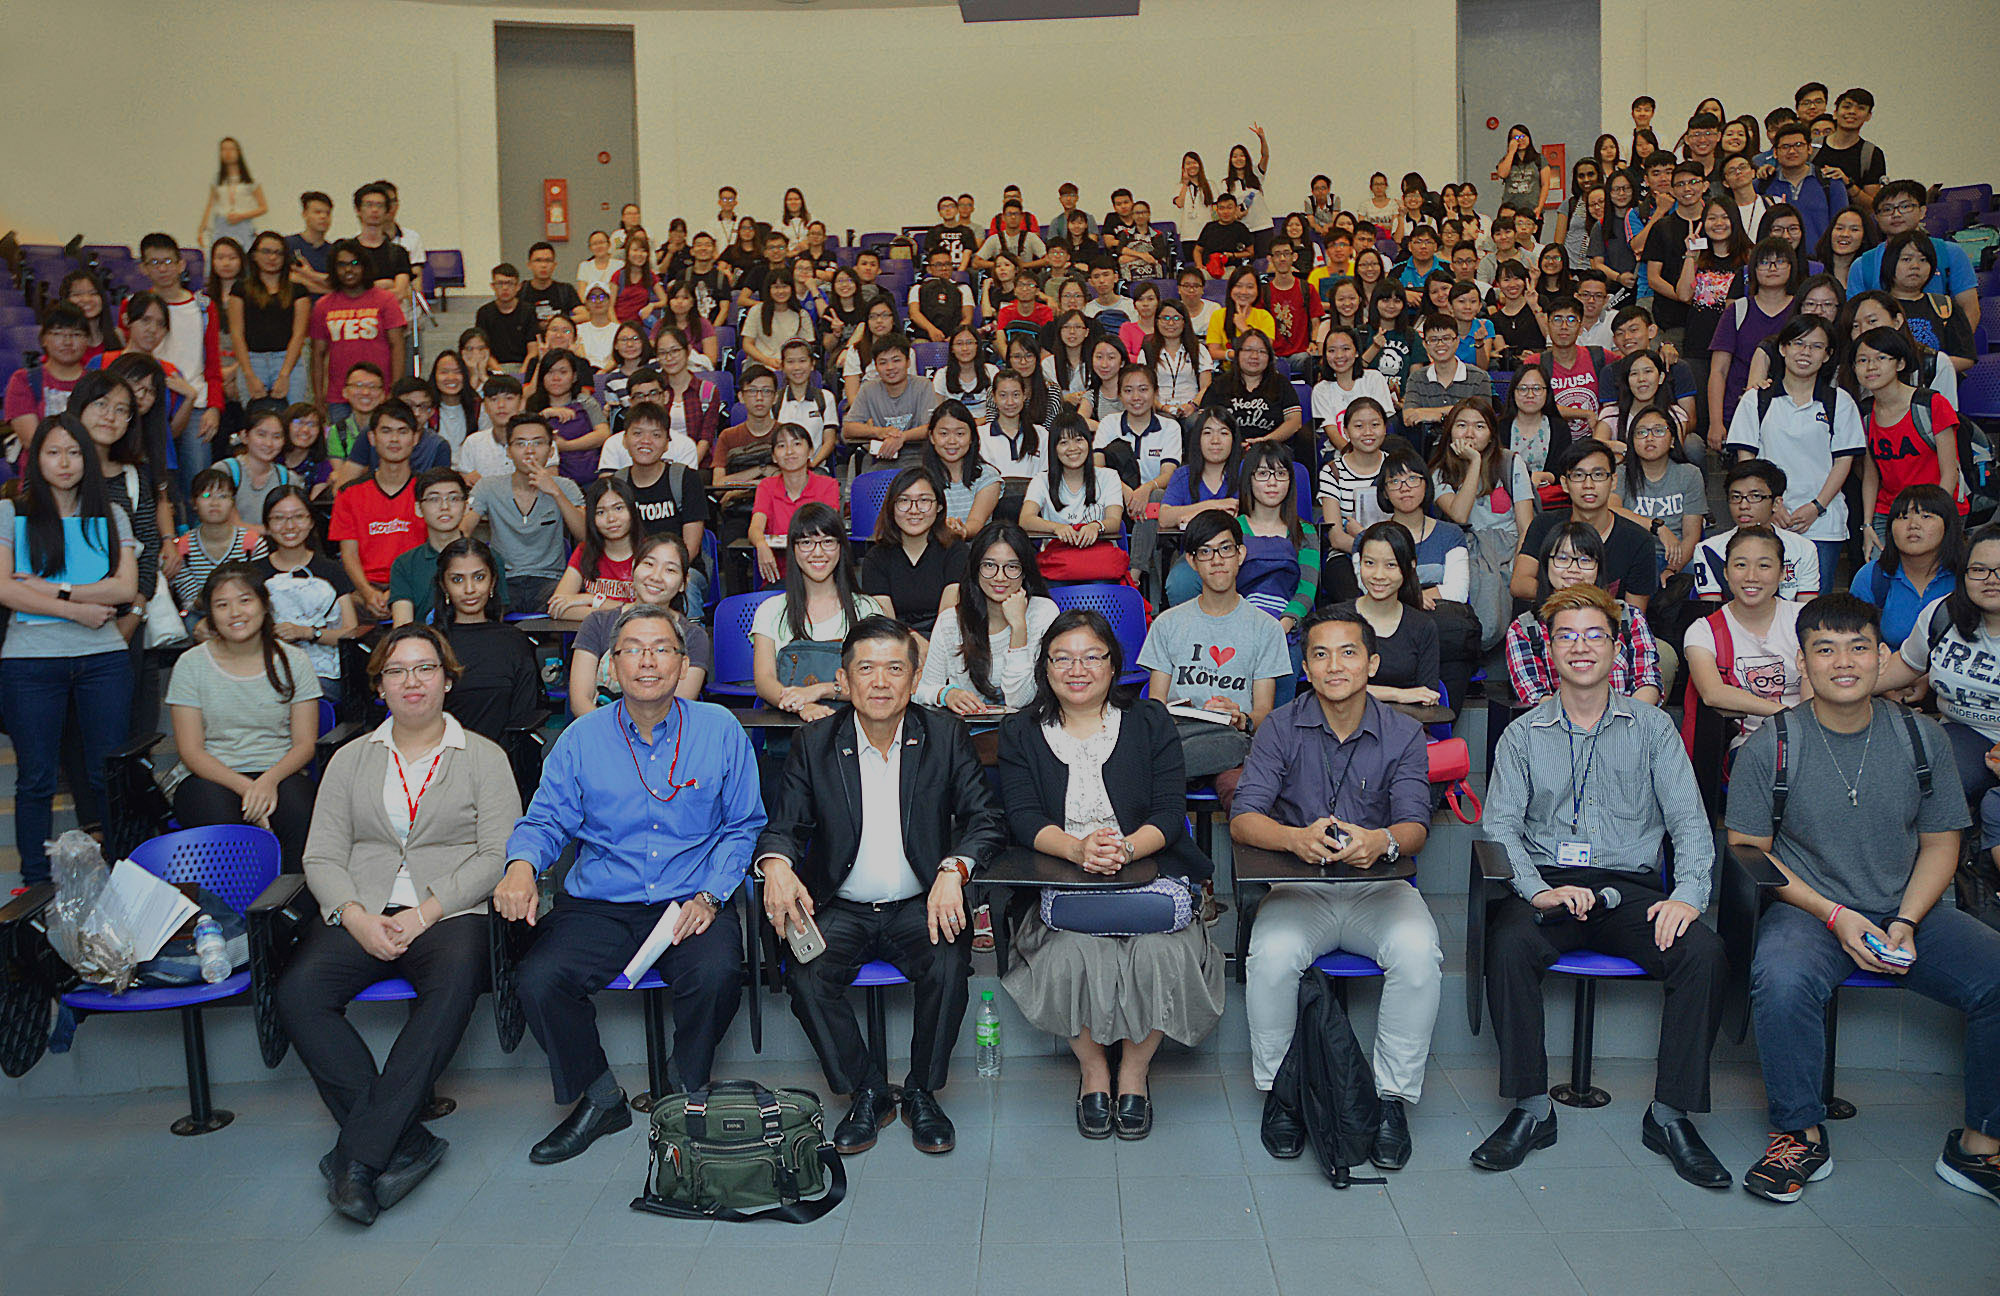 Front row, from second left: Ching, Datuk Seri Kwok and Dr Au Yong with all the participants at the end of the talk